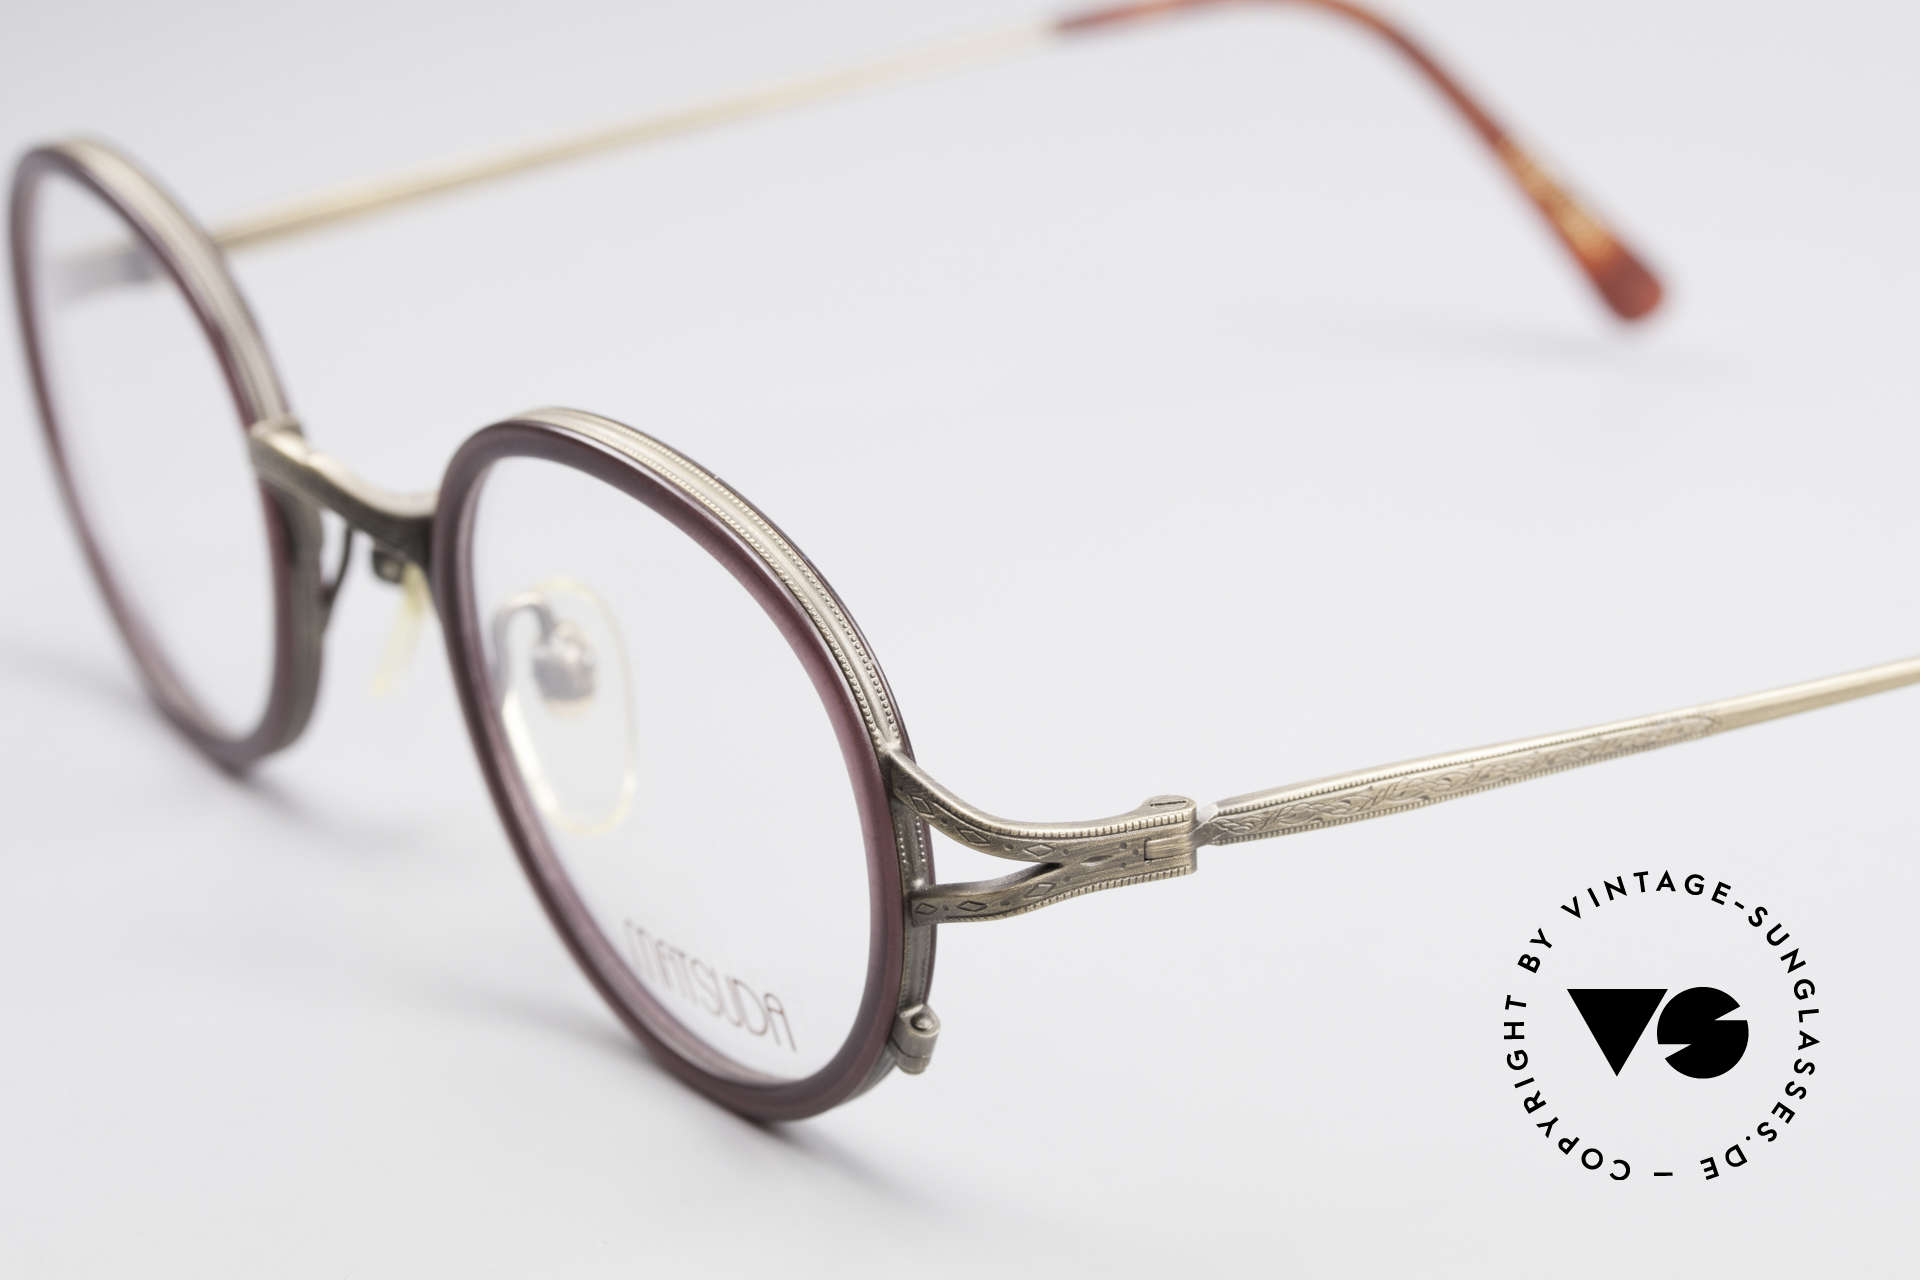 Matsuda 2835 Round 90's Eyeglass-Frame, demo lenses can be easily replaced with prescriptions, Made for Men and Women